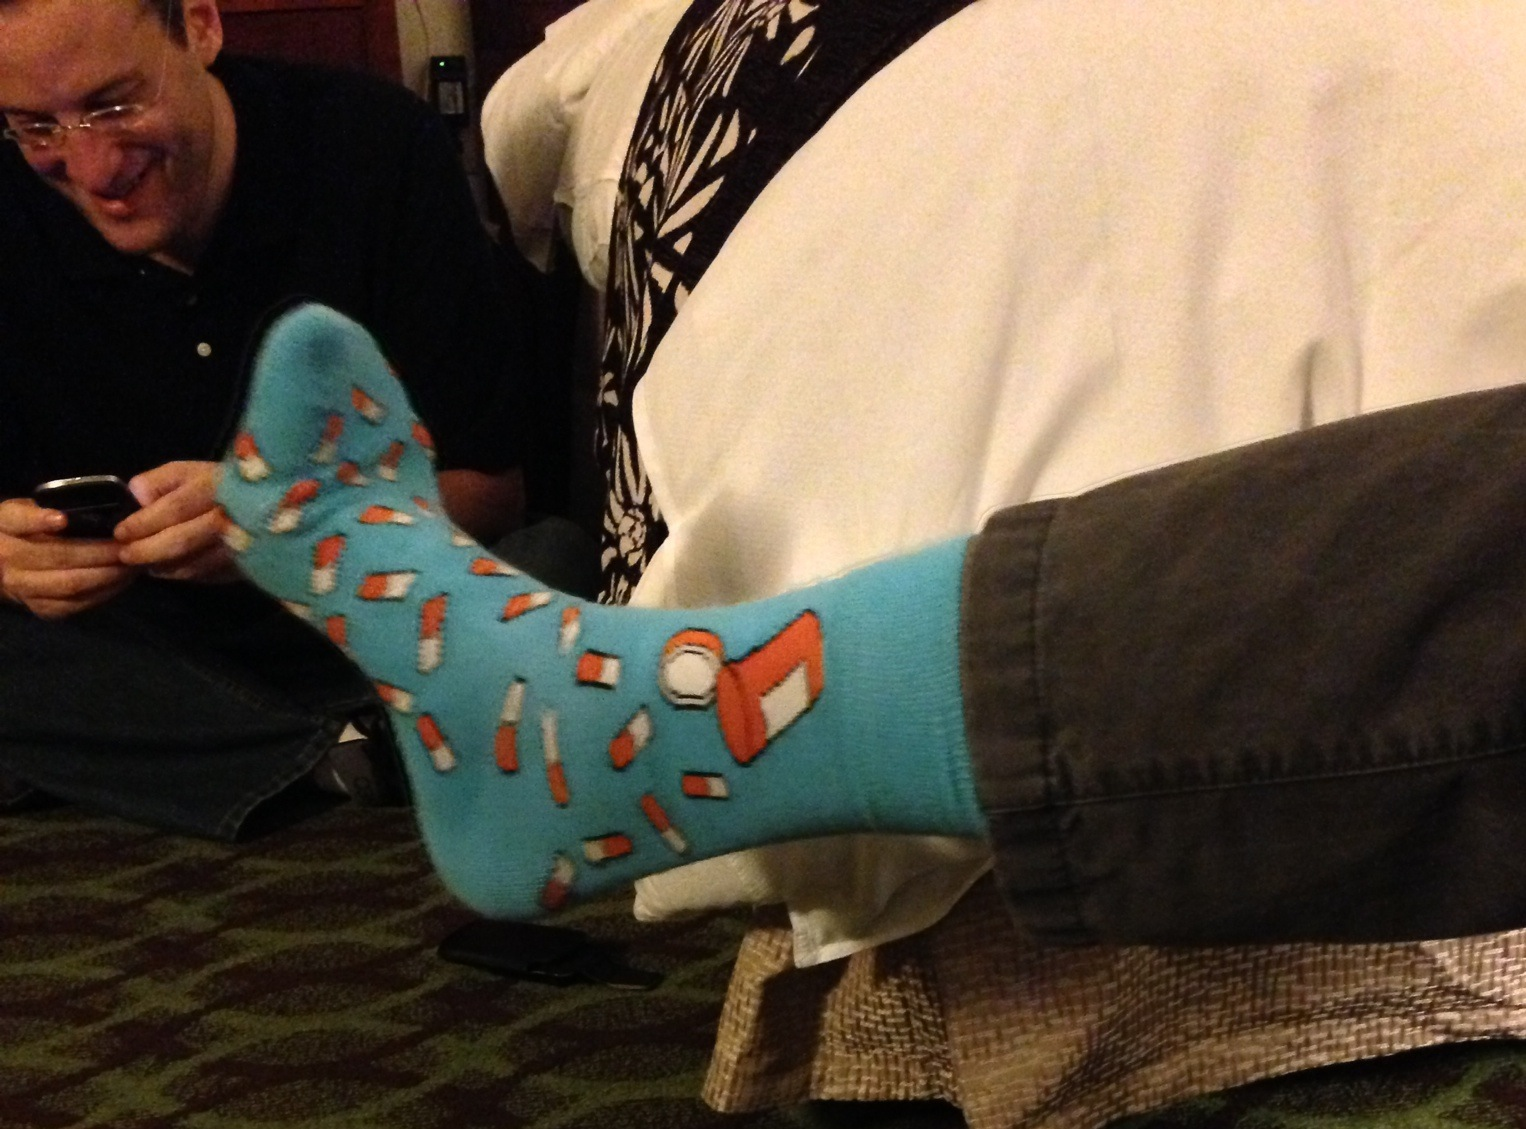 socks and me tweeting2